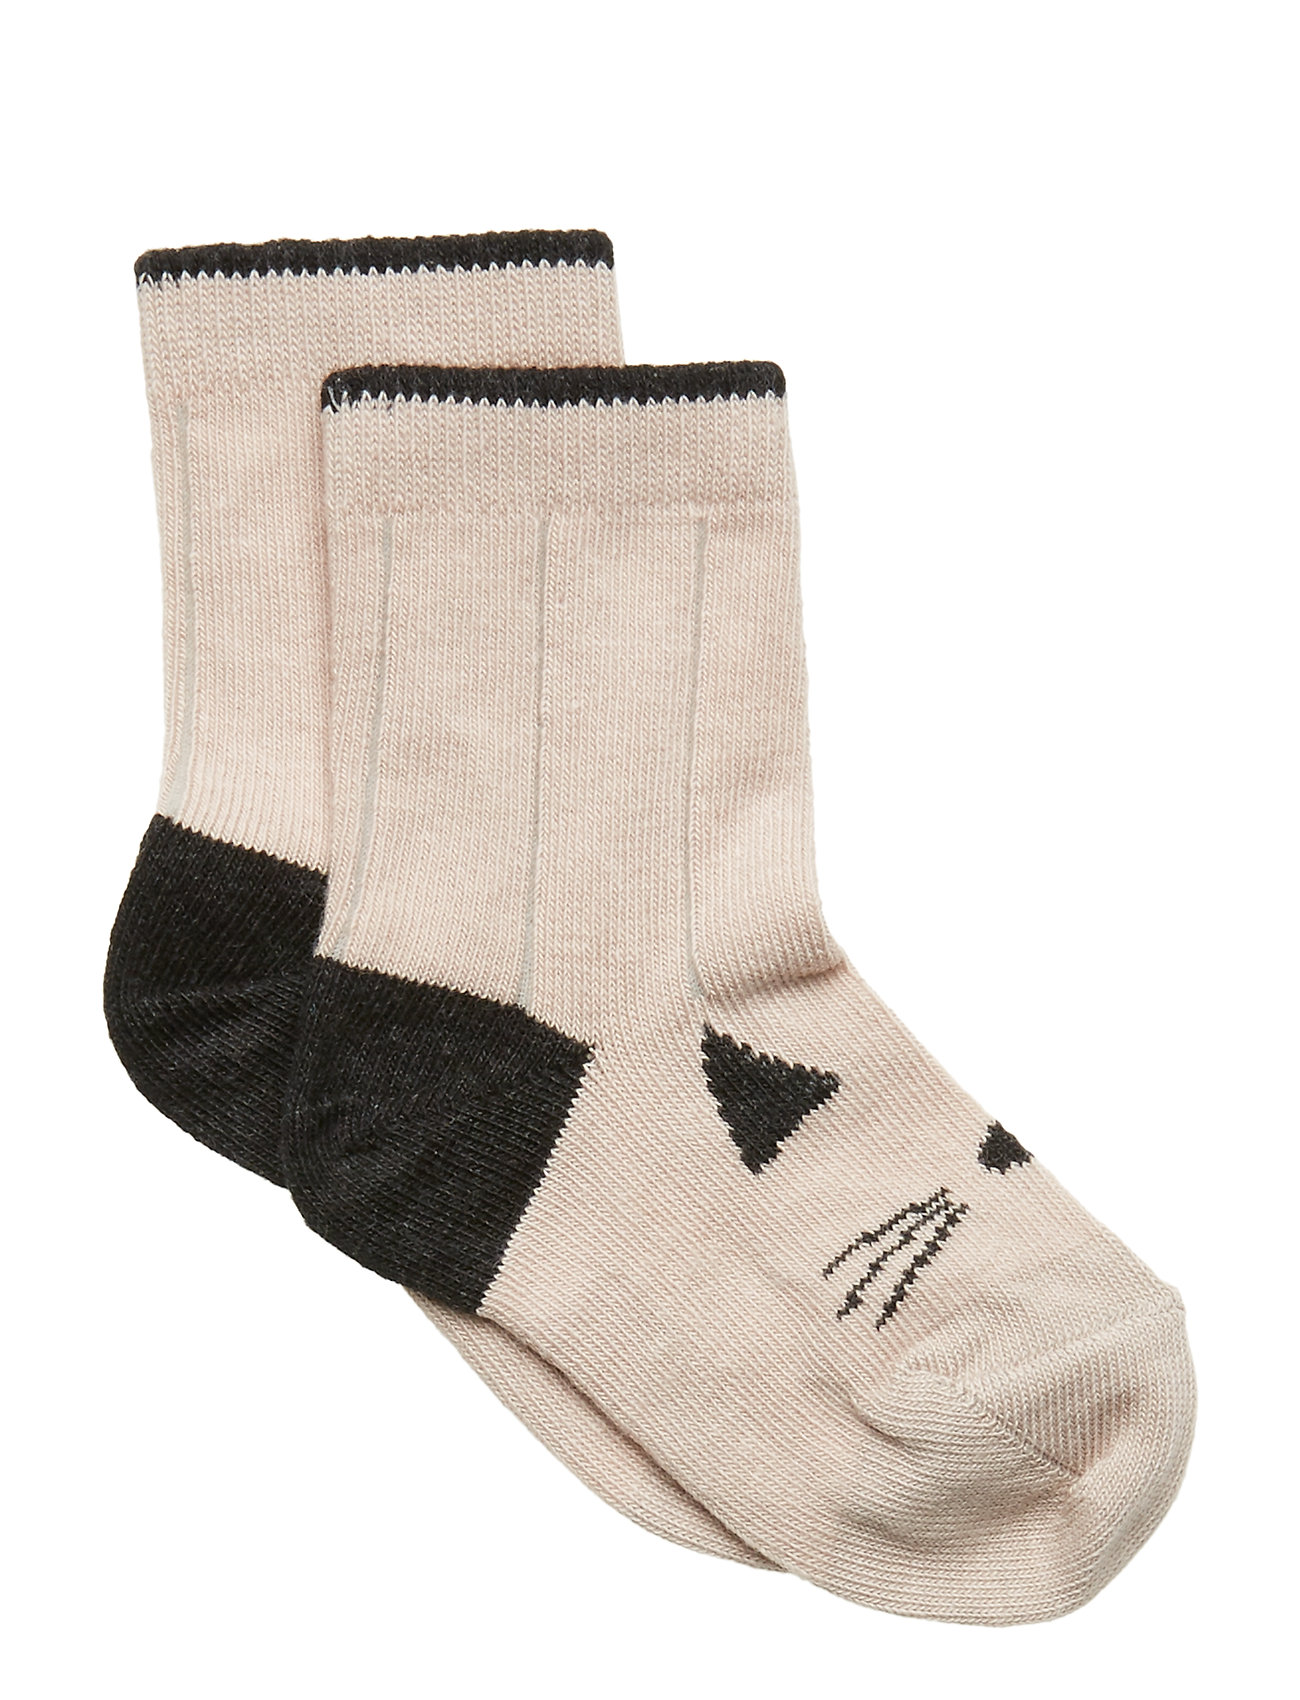 Liewood Silas cotton socks - CAT SWEET ROSE